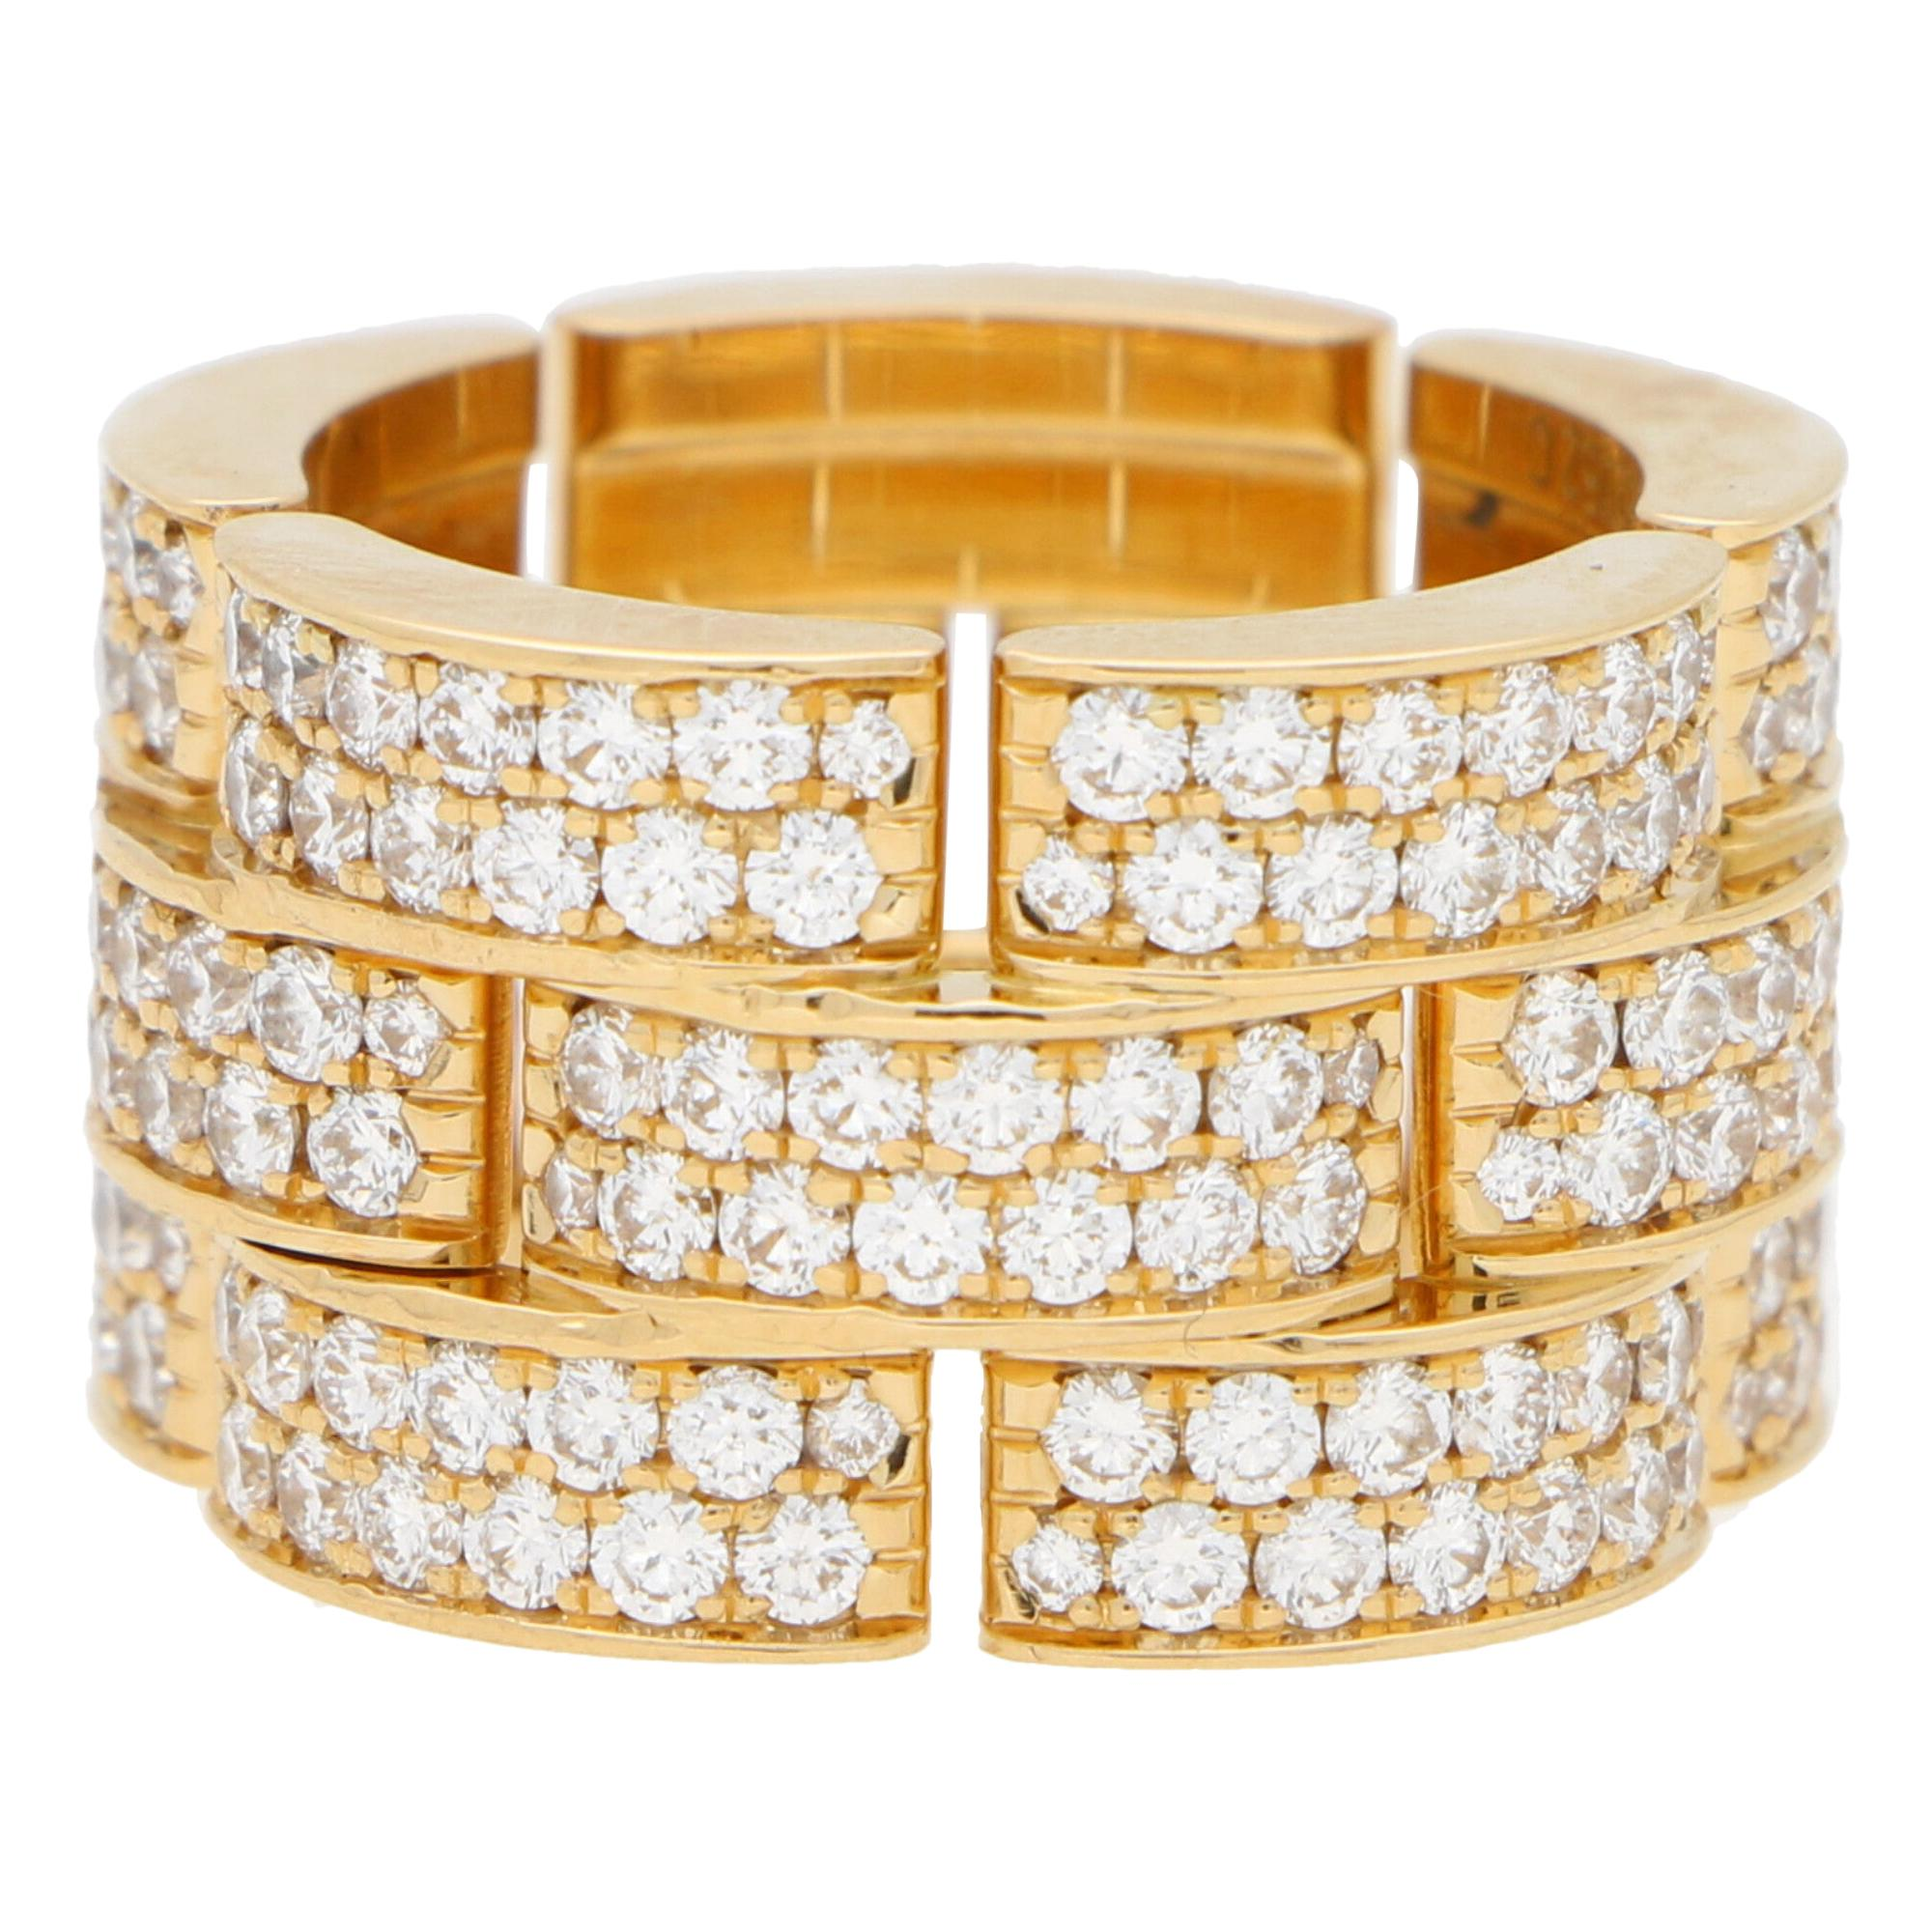 Vintage Cartier Three Row Maillon Panthère Bombè Ring Set in 18k Yellow Gold